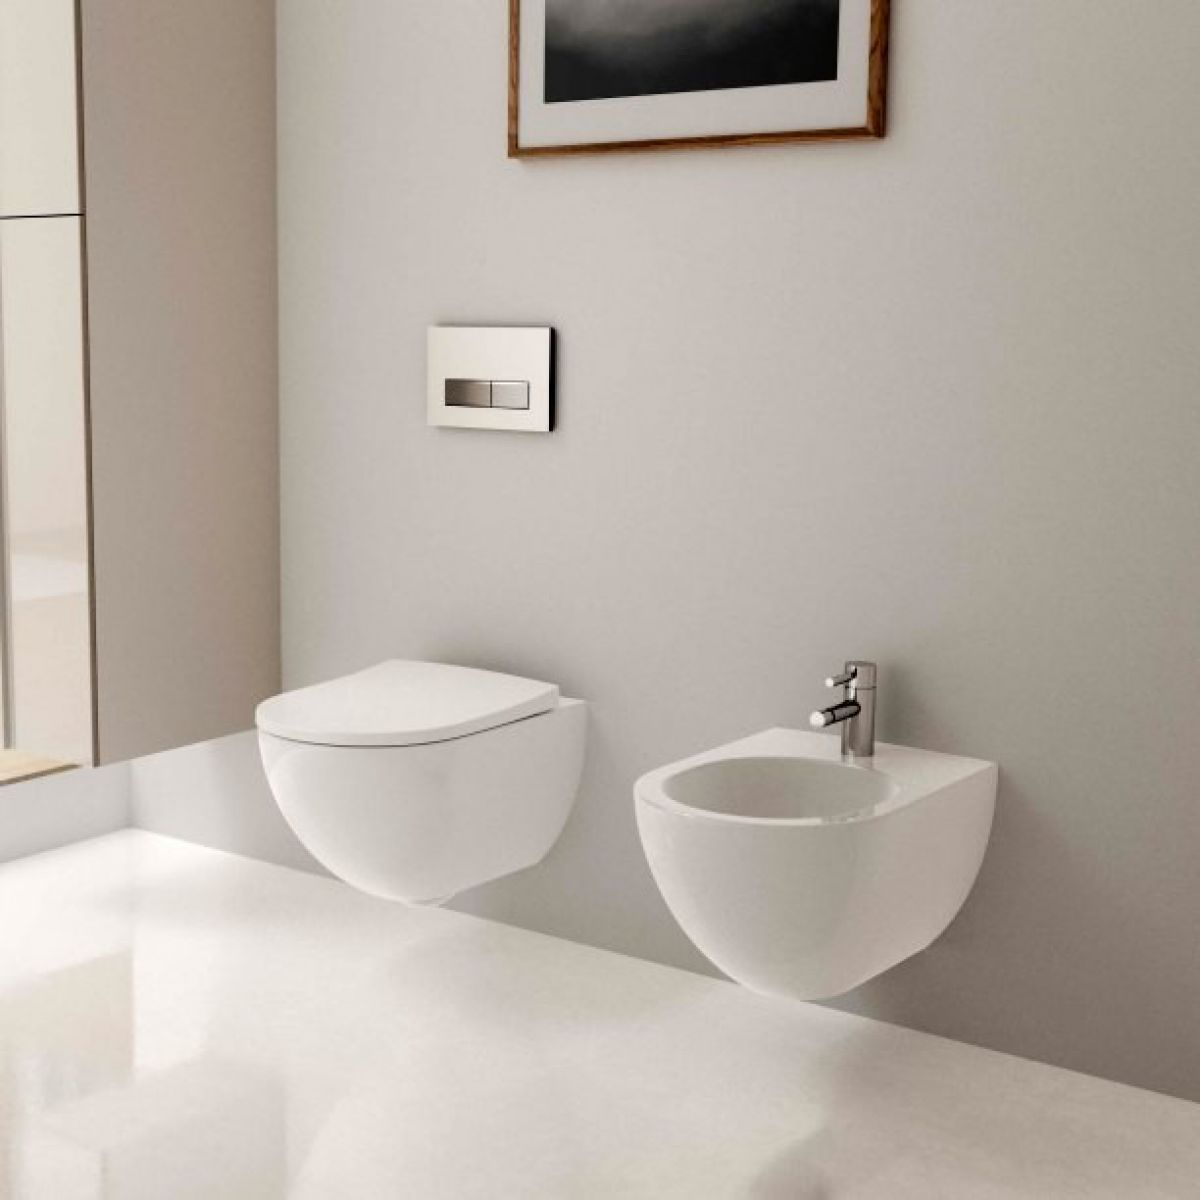 Geberit Acanto Wall Hung Toilet Rimfree